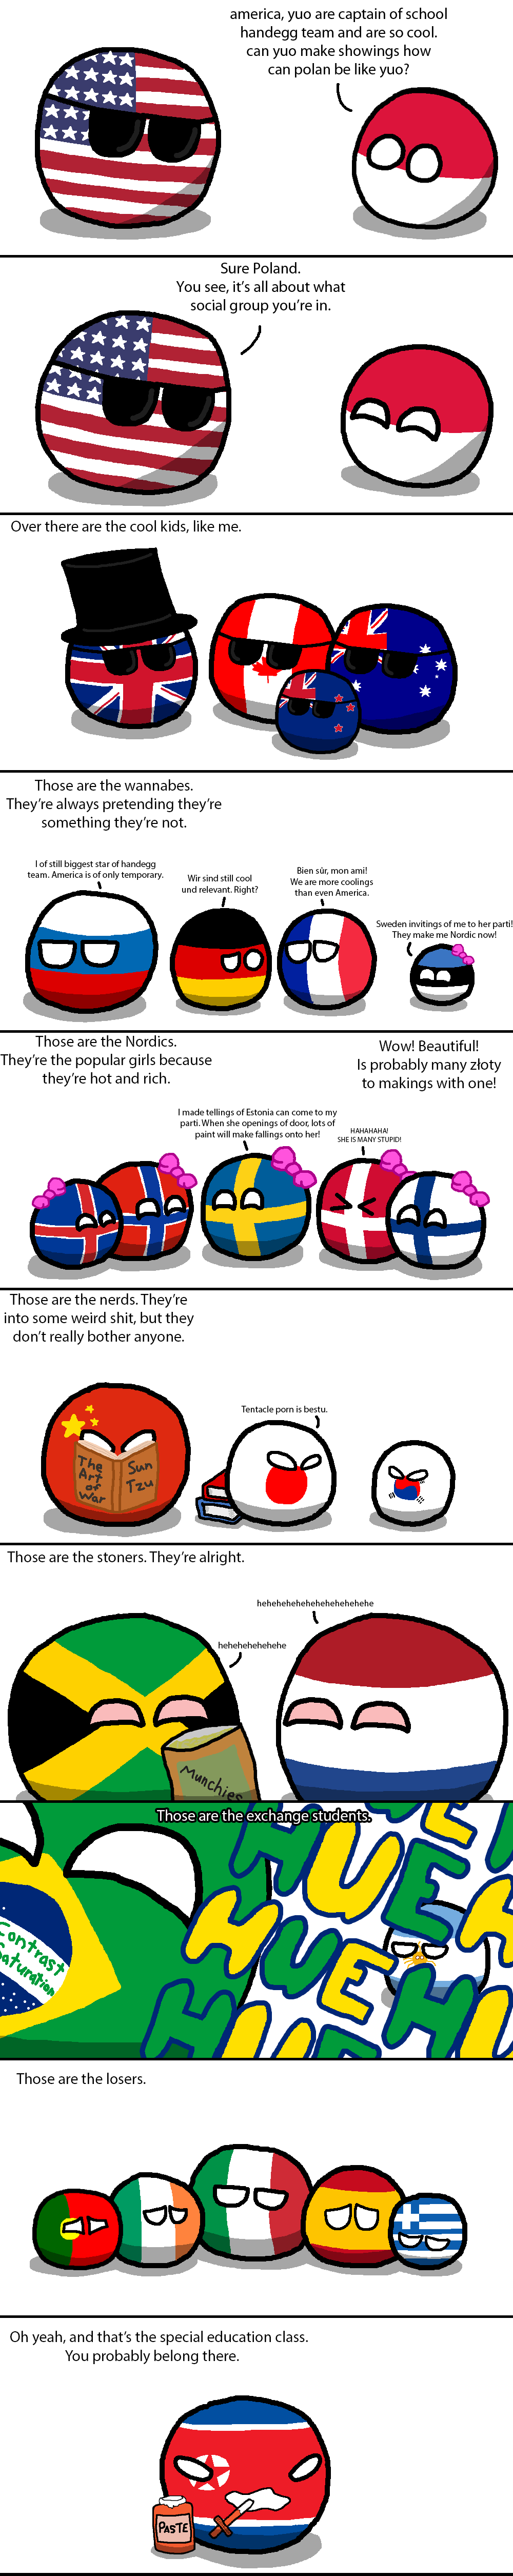 country-balls-polandball-high